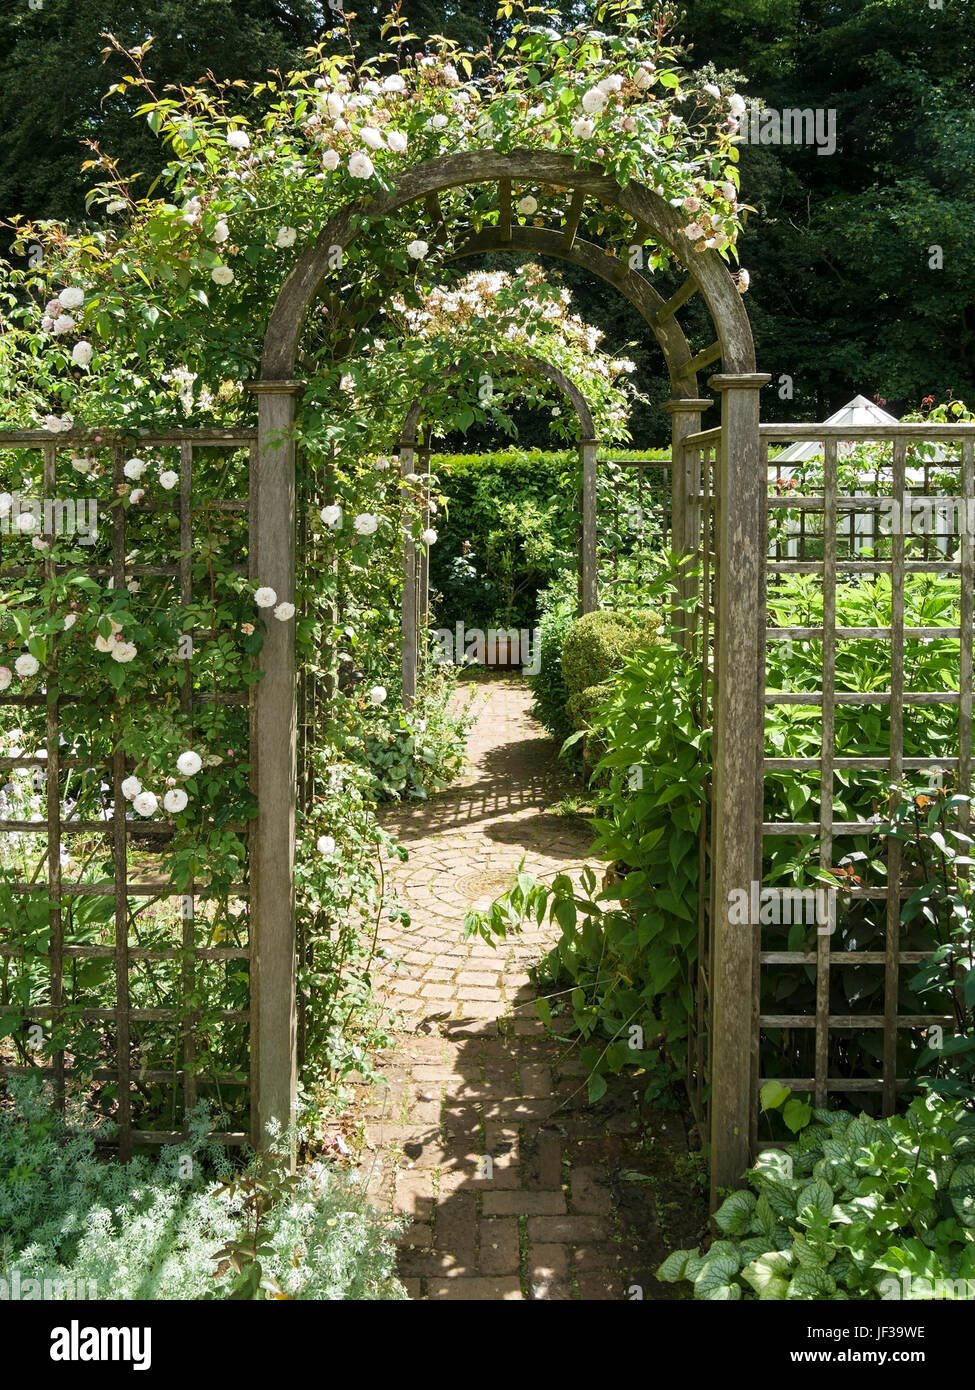 Round Topped Wooden Rose Arches And Trellis Over Garden Path Stock